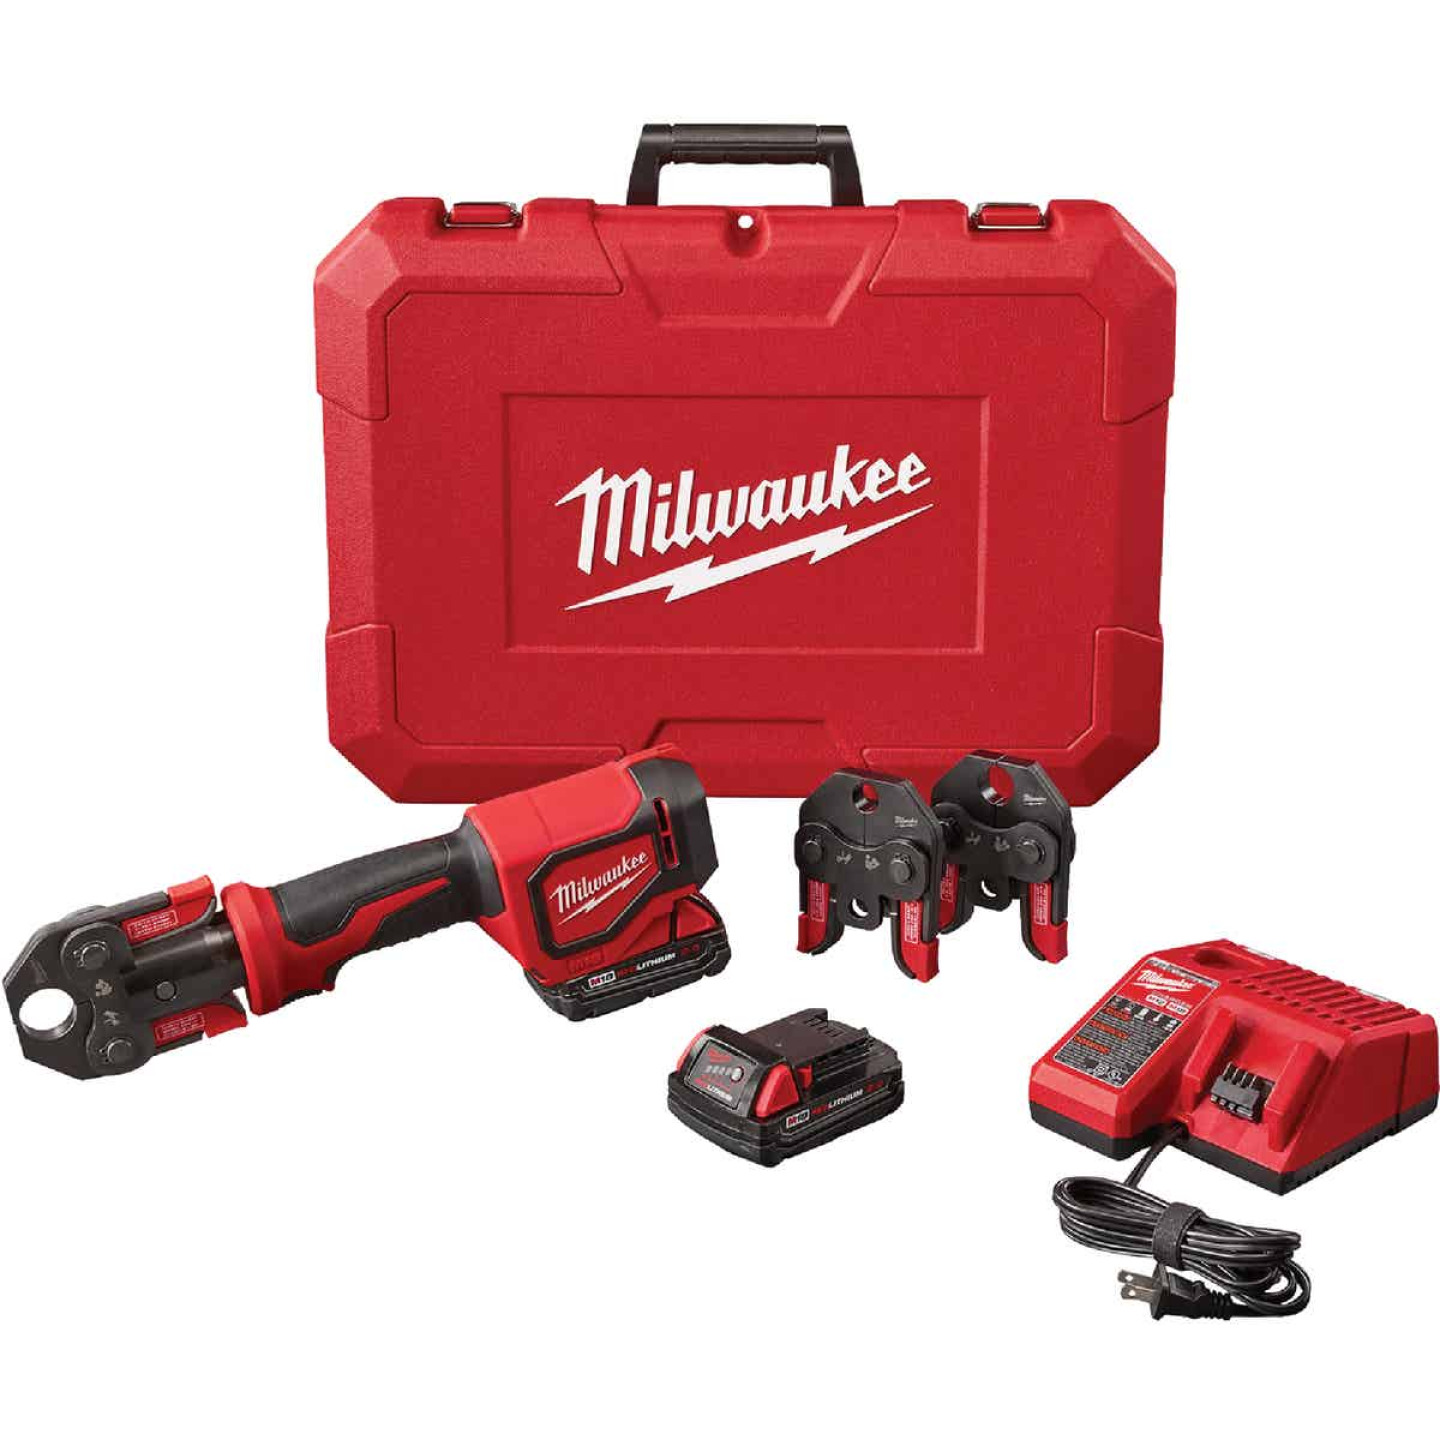 Milwaukee M18 18 Volt Lithium-Ion Short Throw Cordless Press Tool Kit w/3 PEX Crimp Jaws Image 1